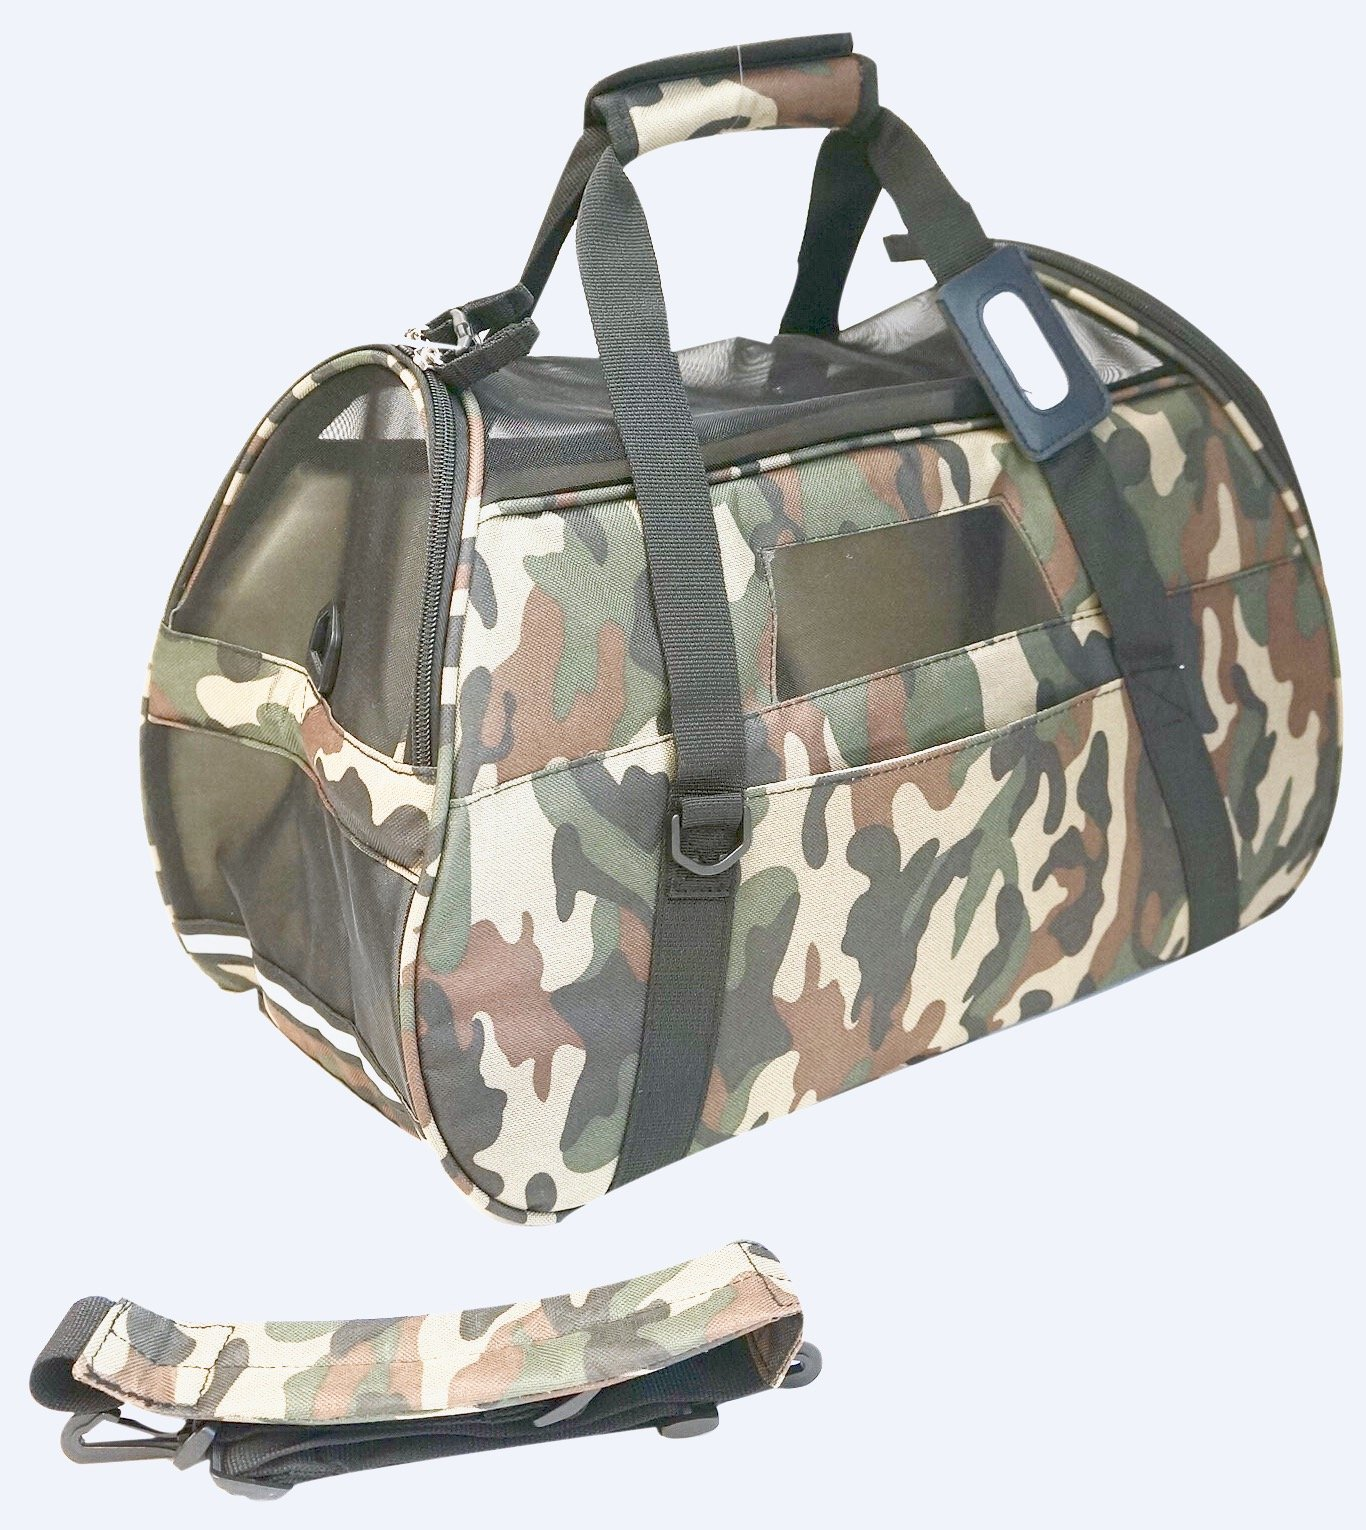 mmyTM Premium Soft-Sided Pet Carrier, Large Camo Classic For Pets up to 22 Lbs/9.98 Kg, Air Travel Compatible